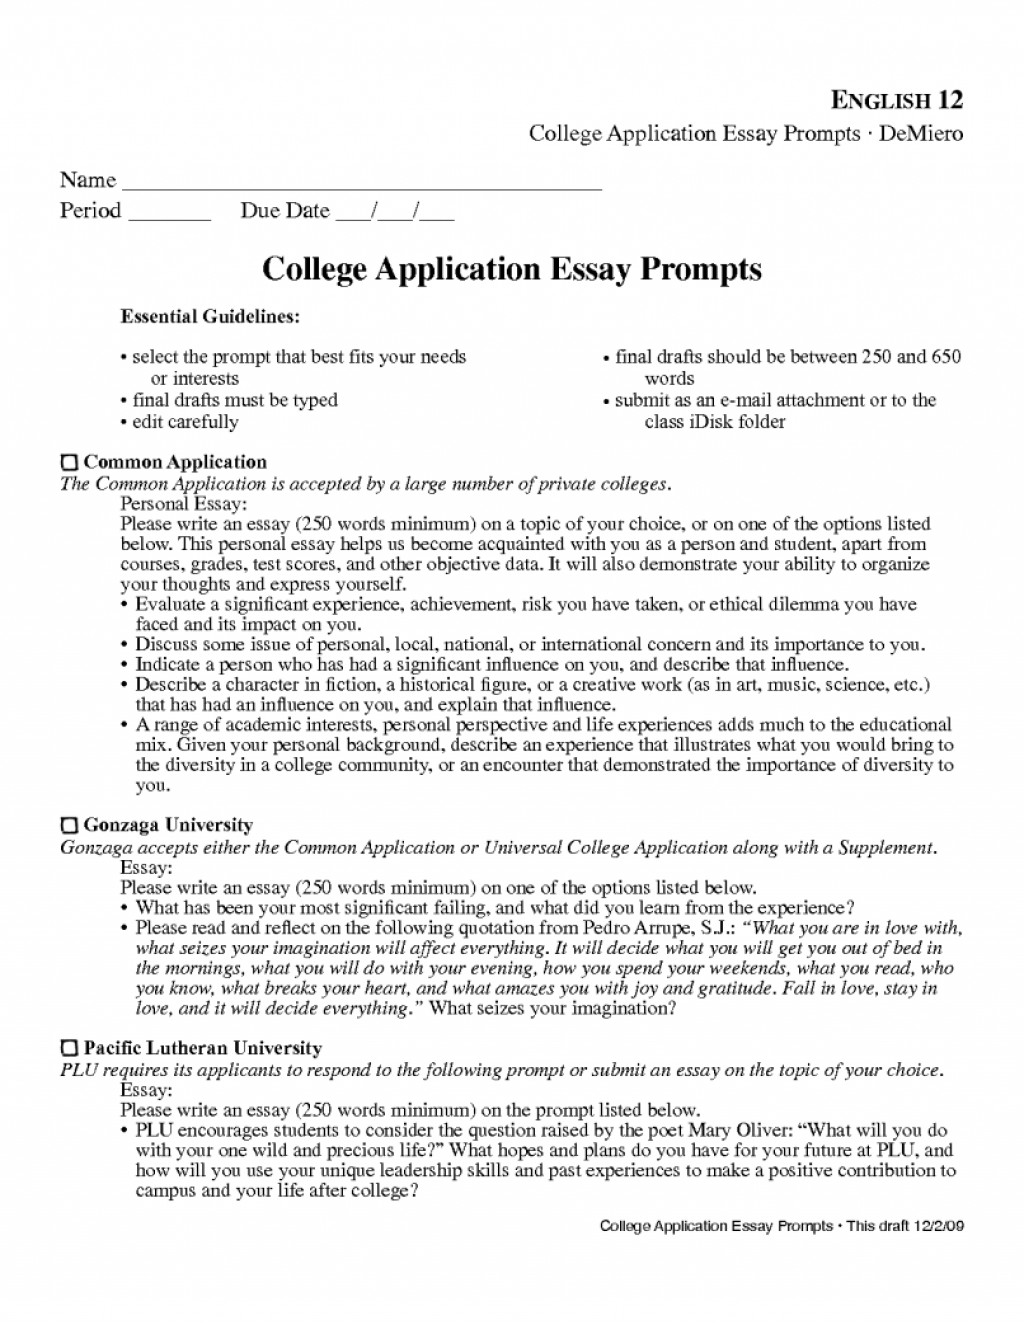 001 The Common App Essay Prompts Poemdoc Or Best College Using Quotes In Essays Quotesgram Admission L Ucf Prompt Boston Uc Harvard Texas Mit Amherst Pomona Example Application 2017 Examples Large